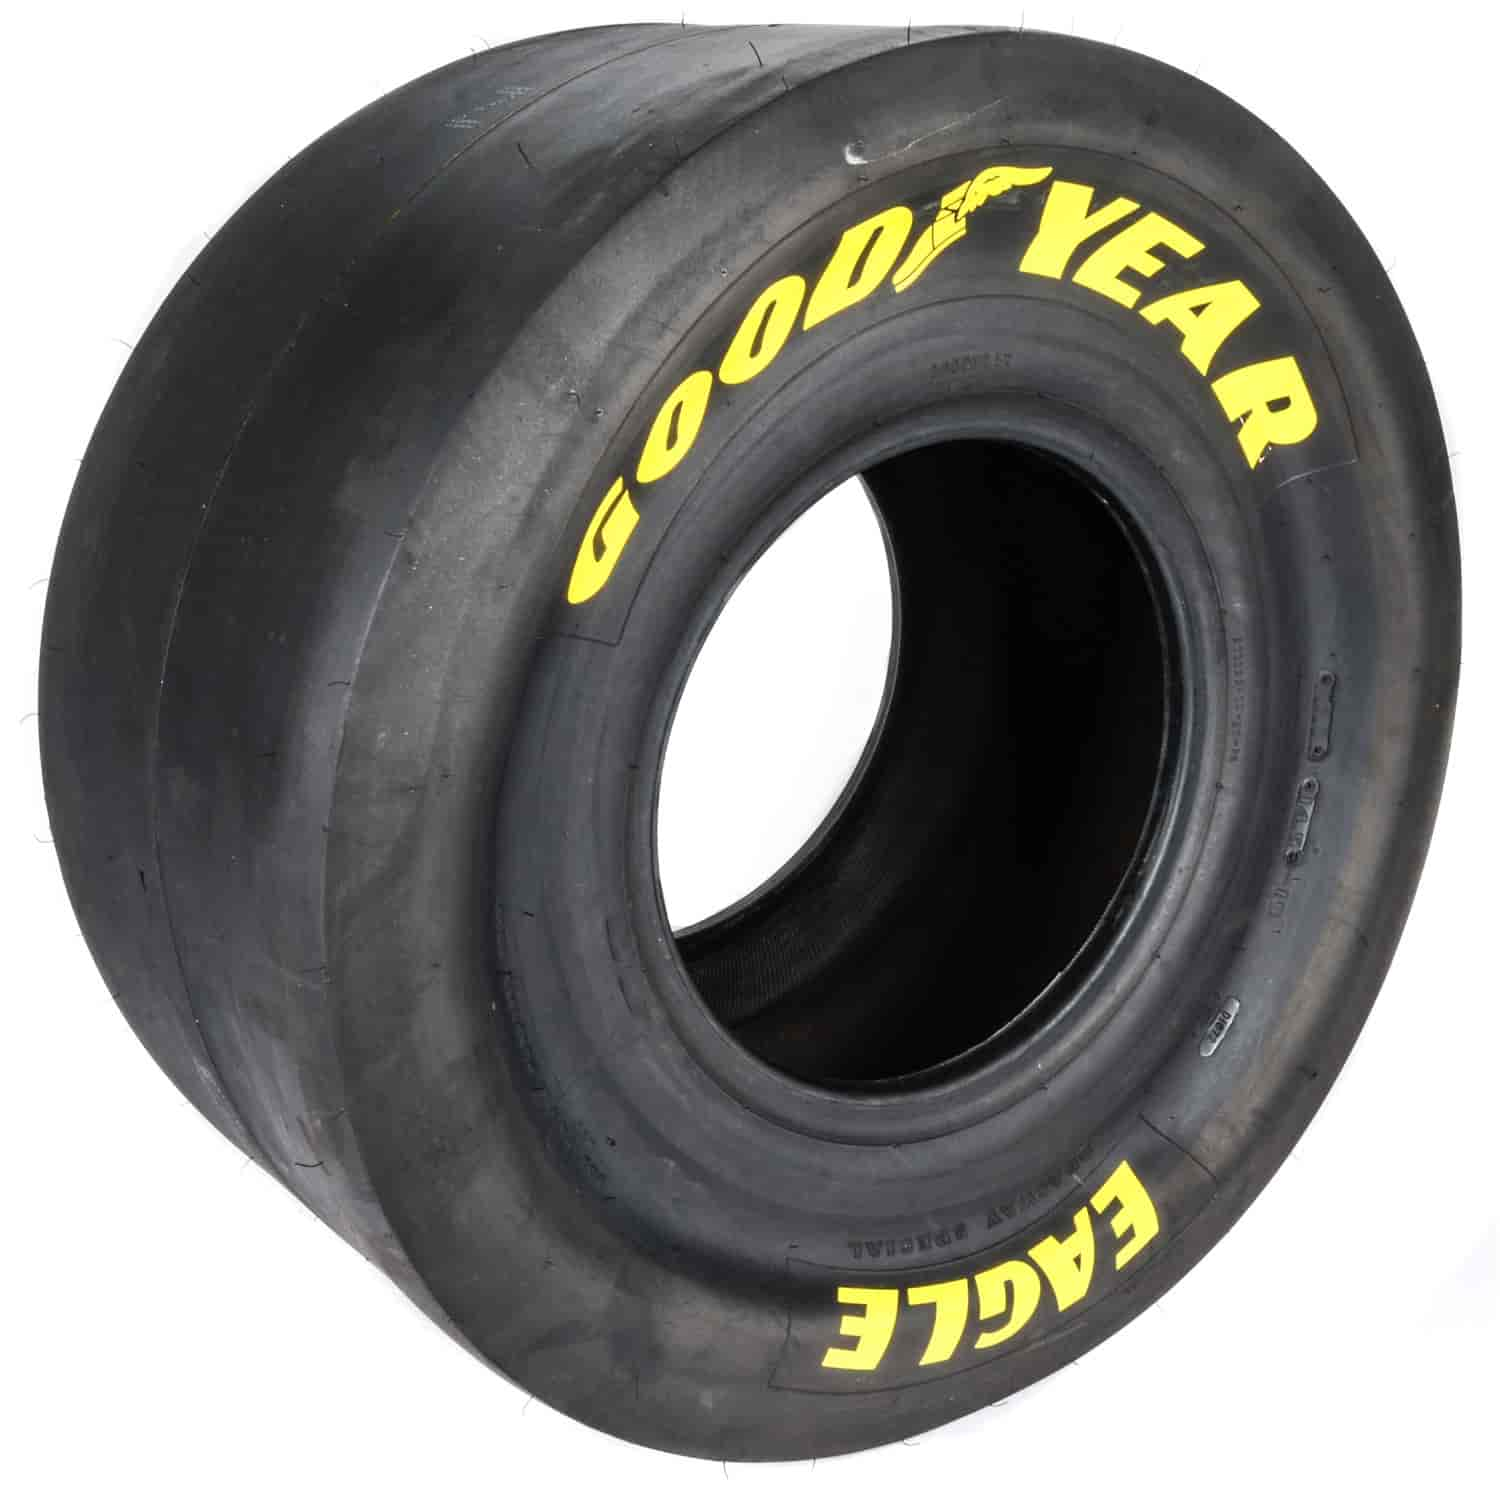 "Goodyear D1672 Eagle Drag Slick 32"" x 14 5"" 15"